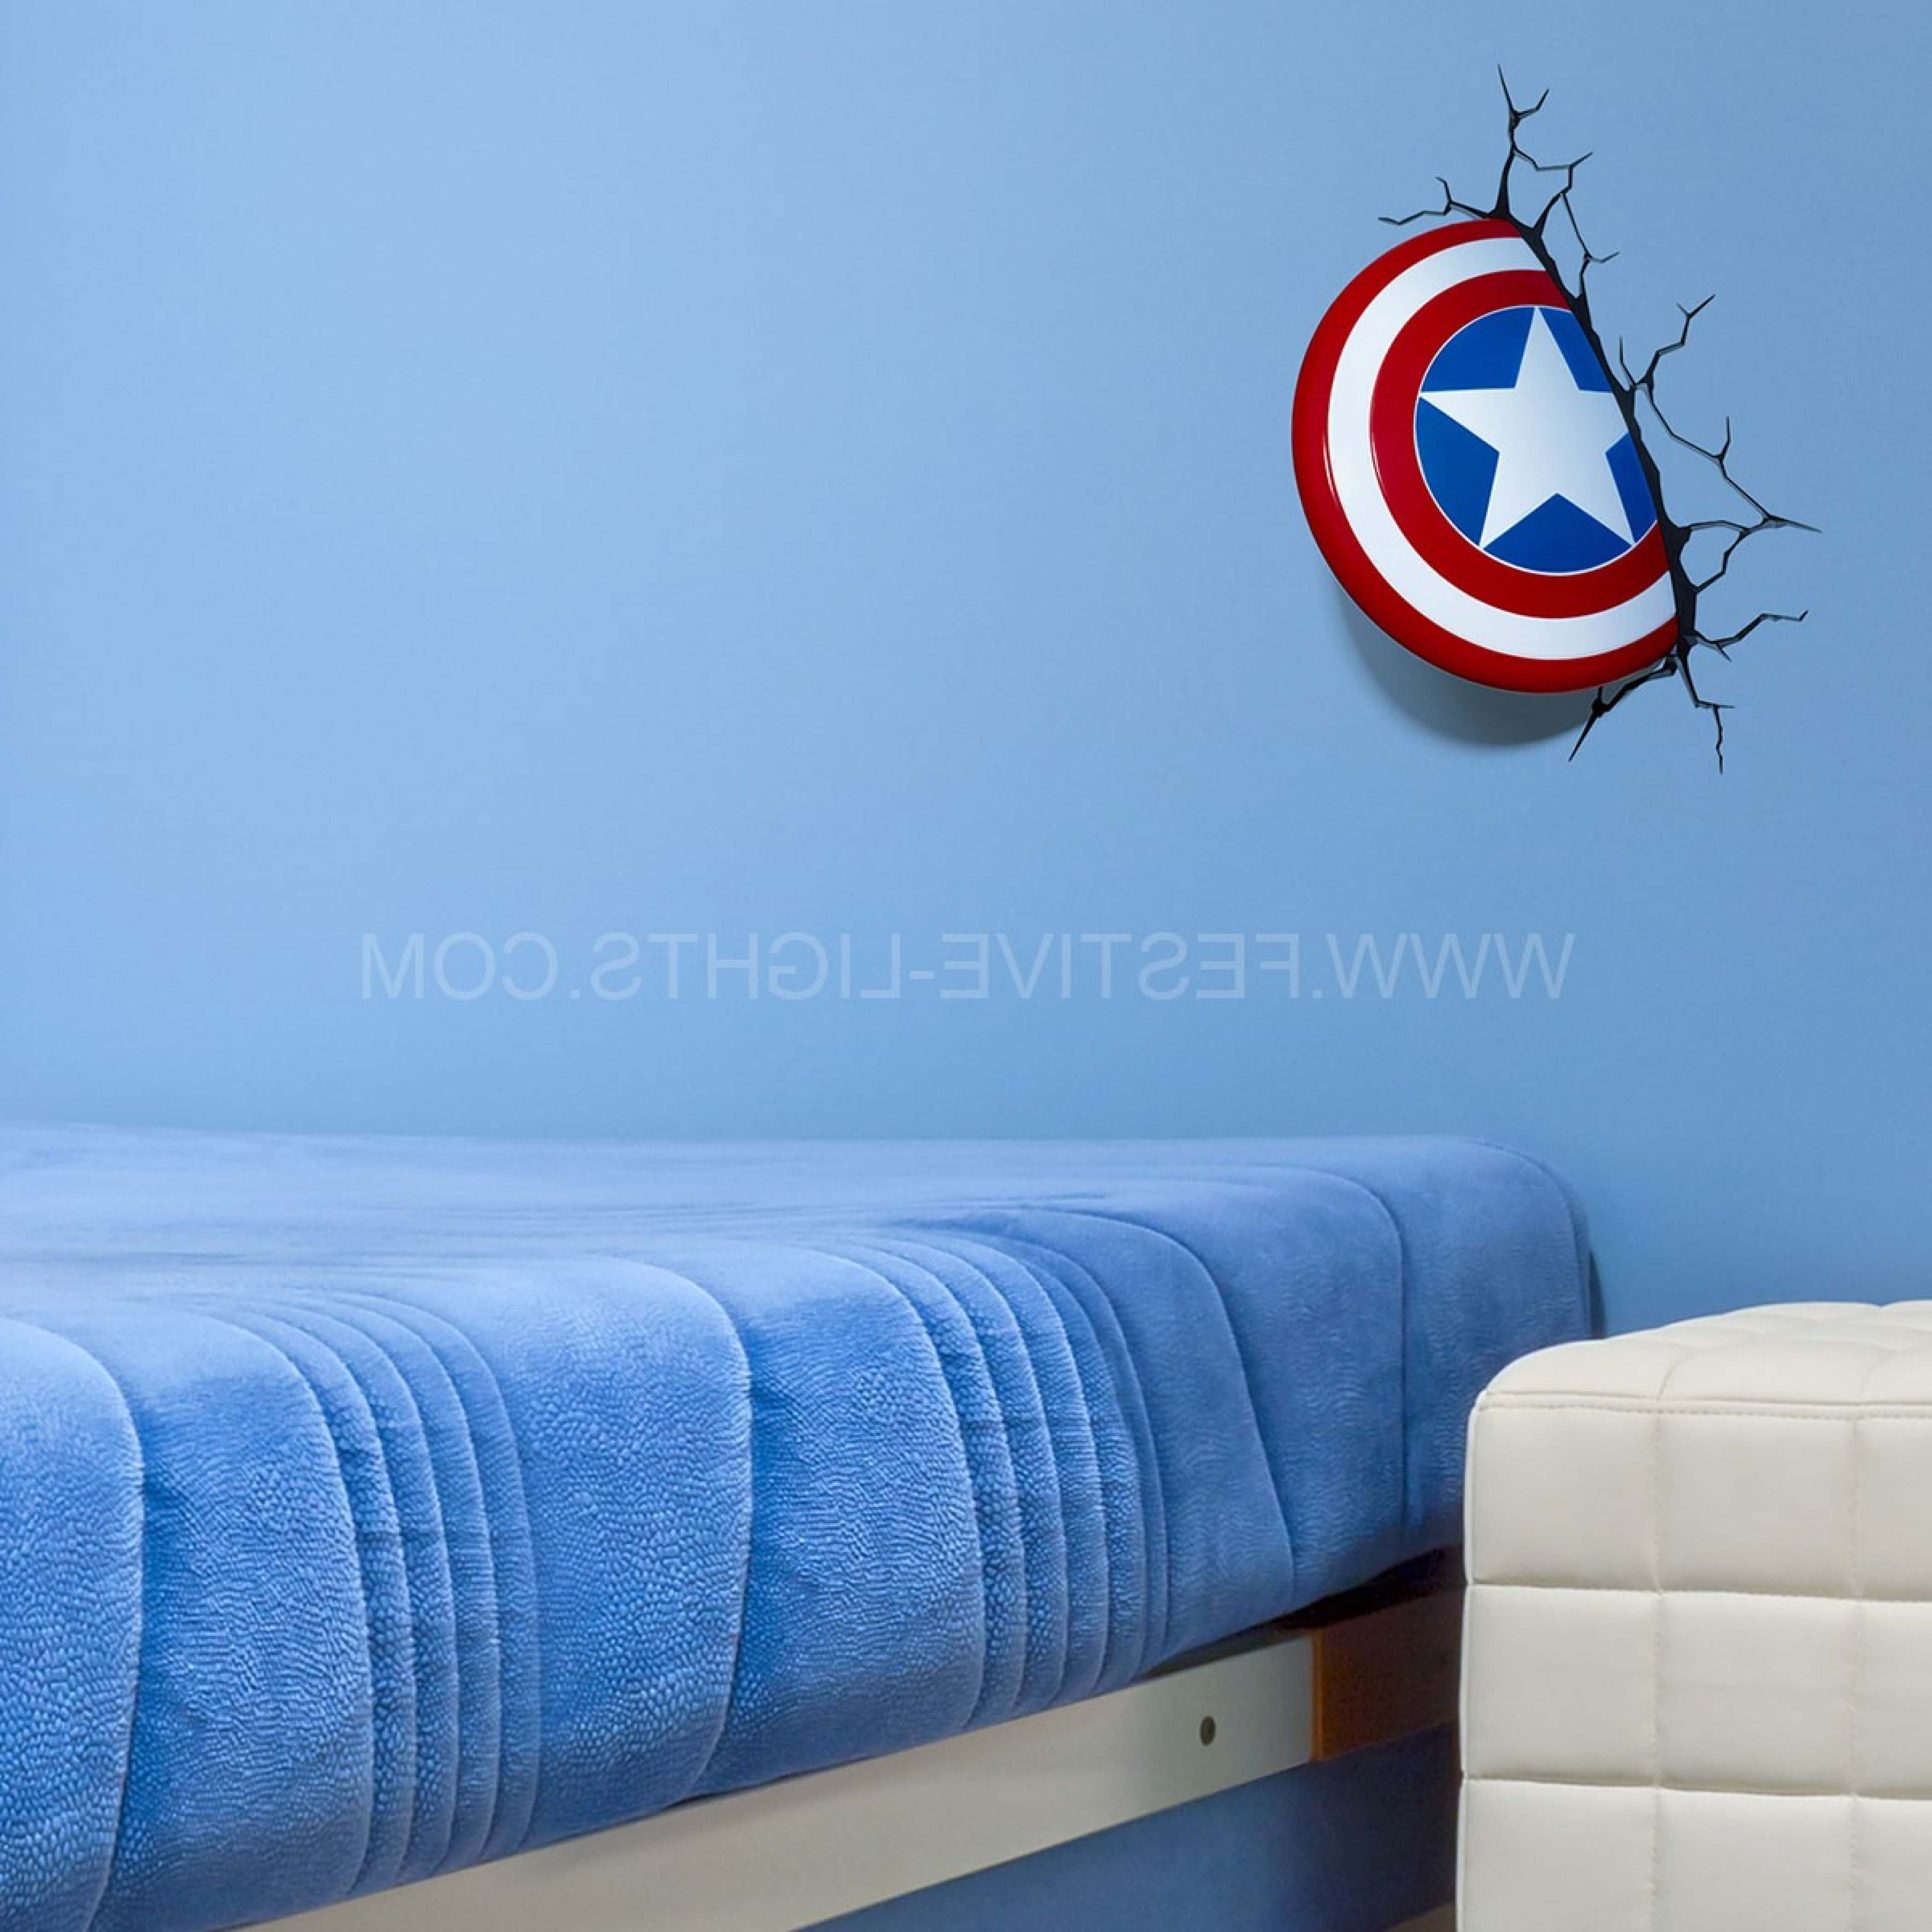 Famous America Shield 3D Led Battery Wall Art Night Light With Regard To 3D Wall Art Captain America Night Light (View 9 of 15)